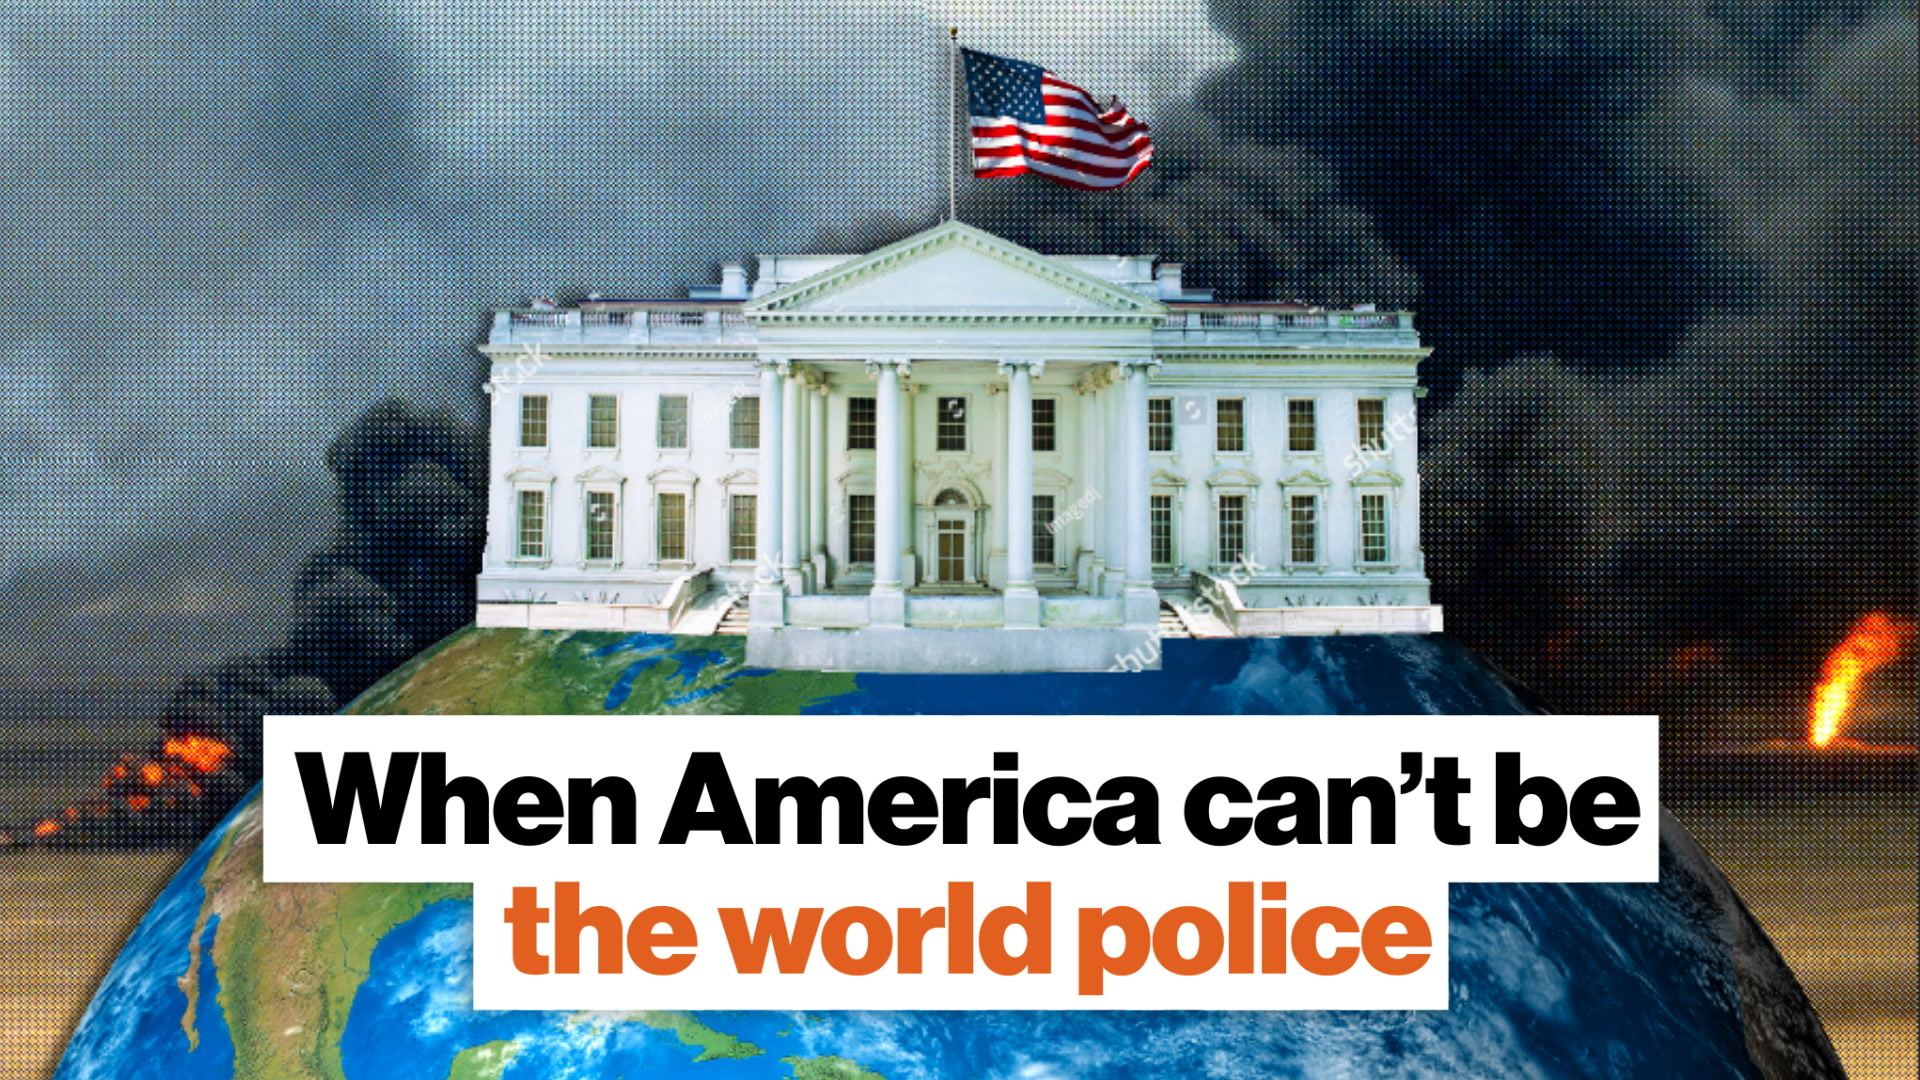 When America polices the world, everybody loses